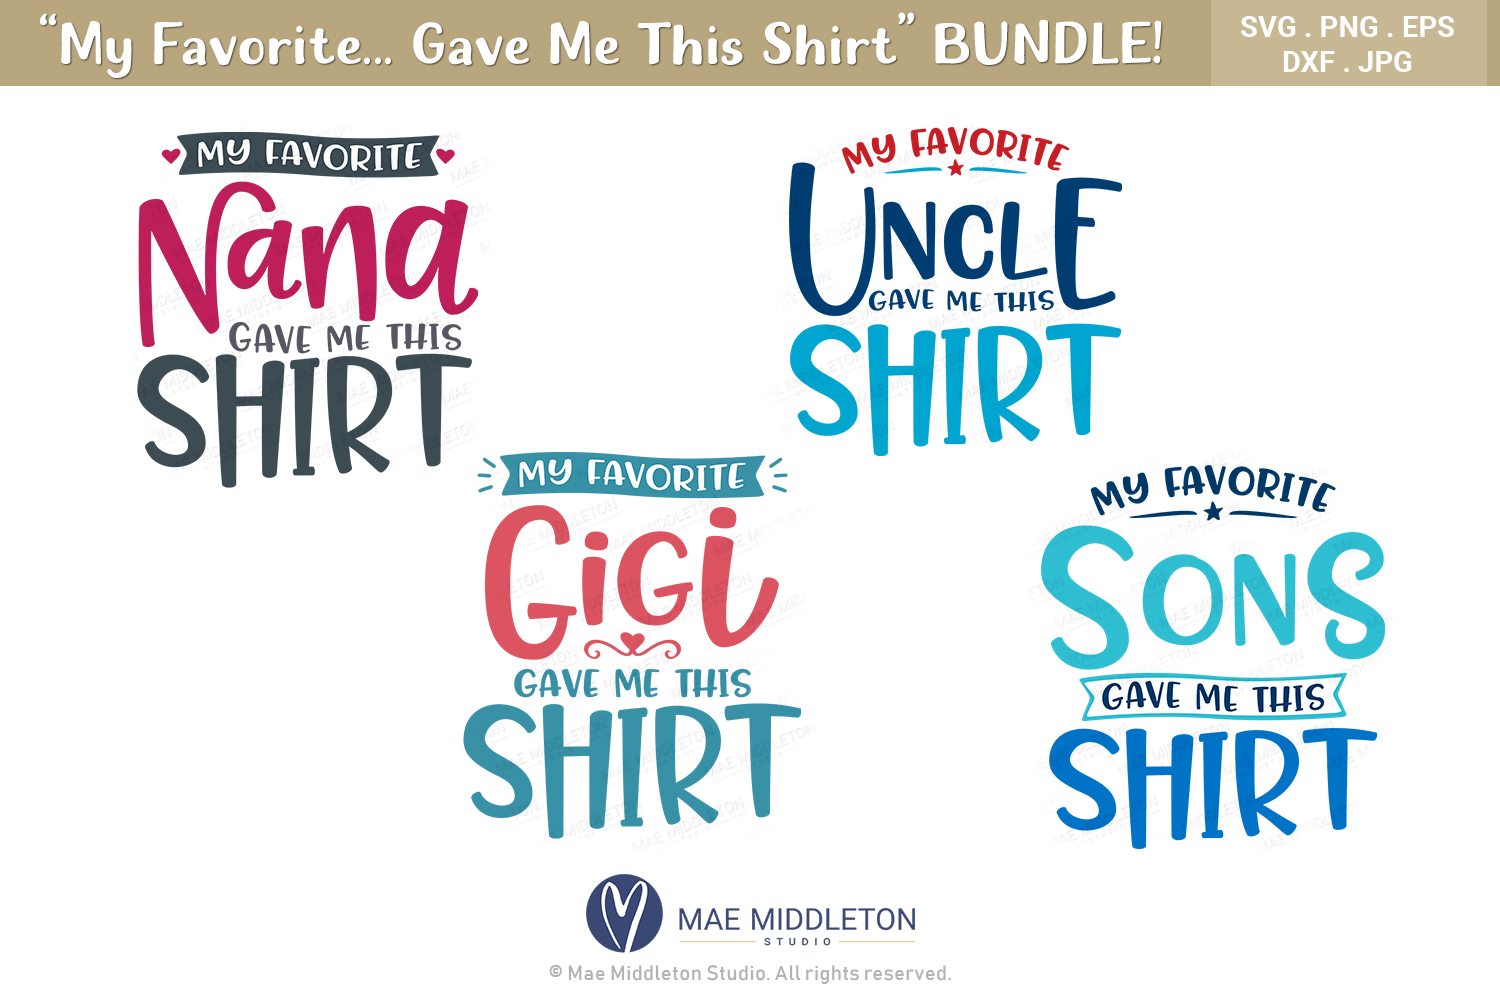 My Favorite... Gave Me This Shirt SVG Bundle example image 2